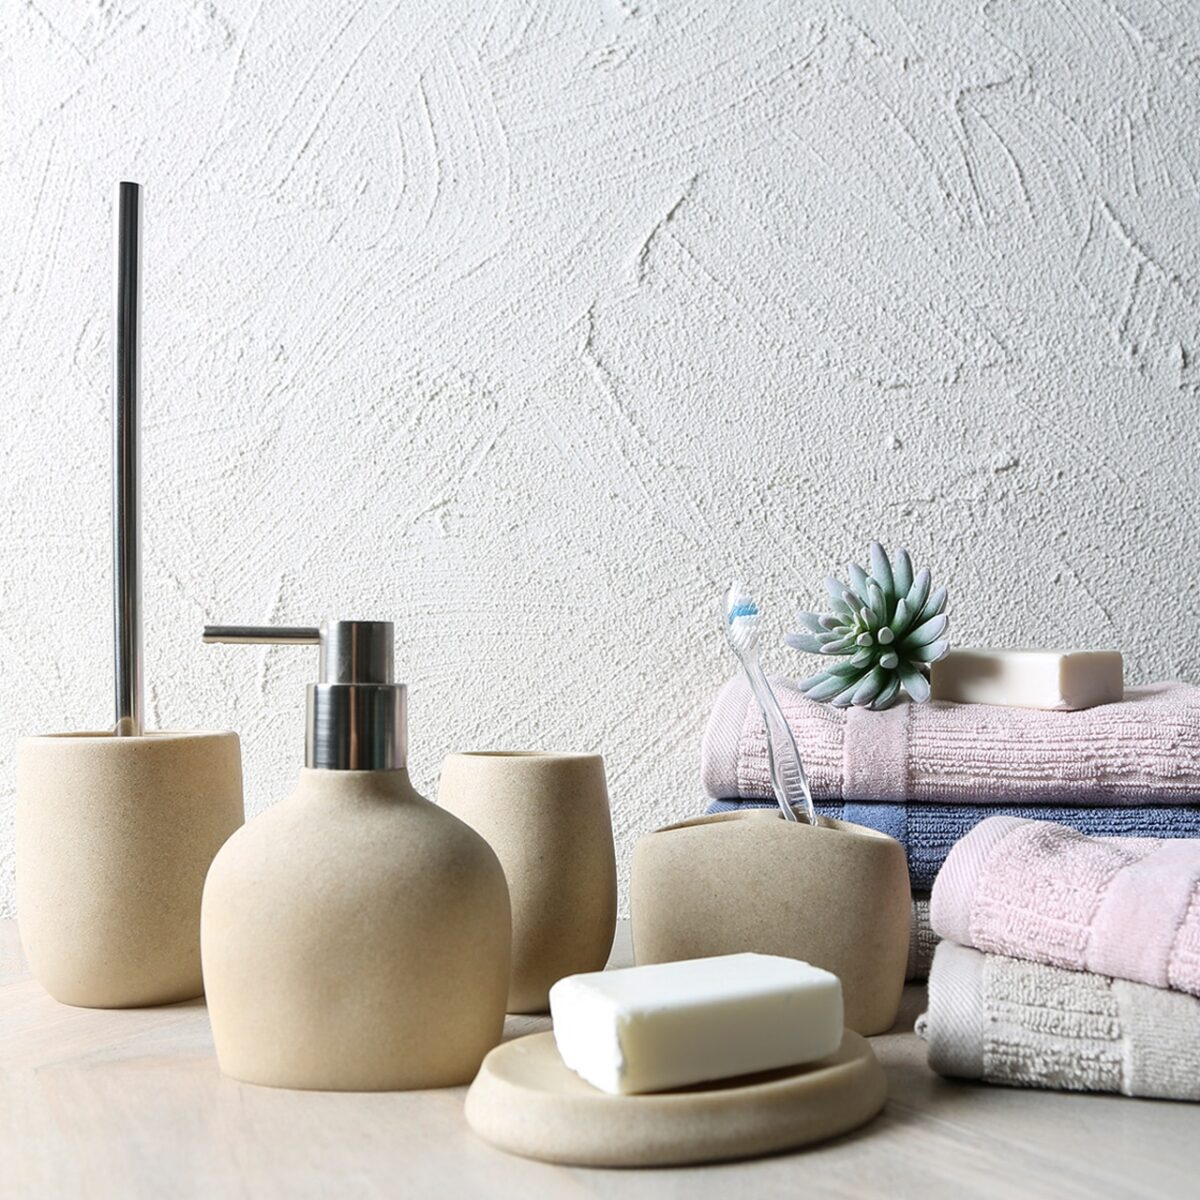 essential-bathroom-accessories-how-to-choose-4